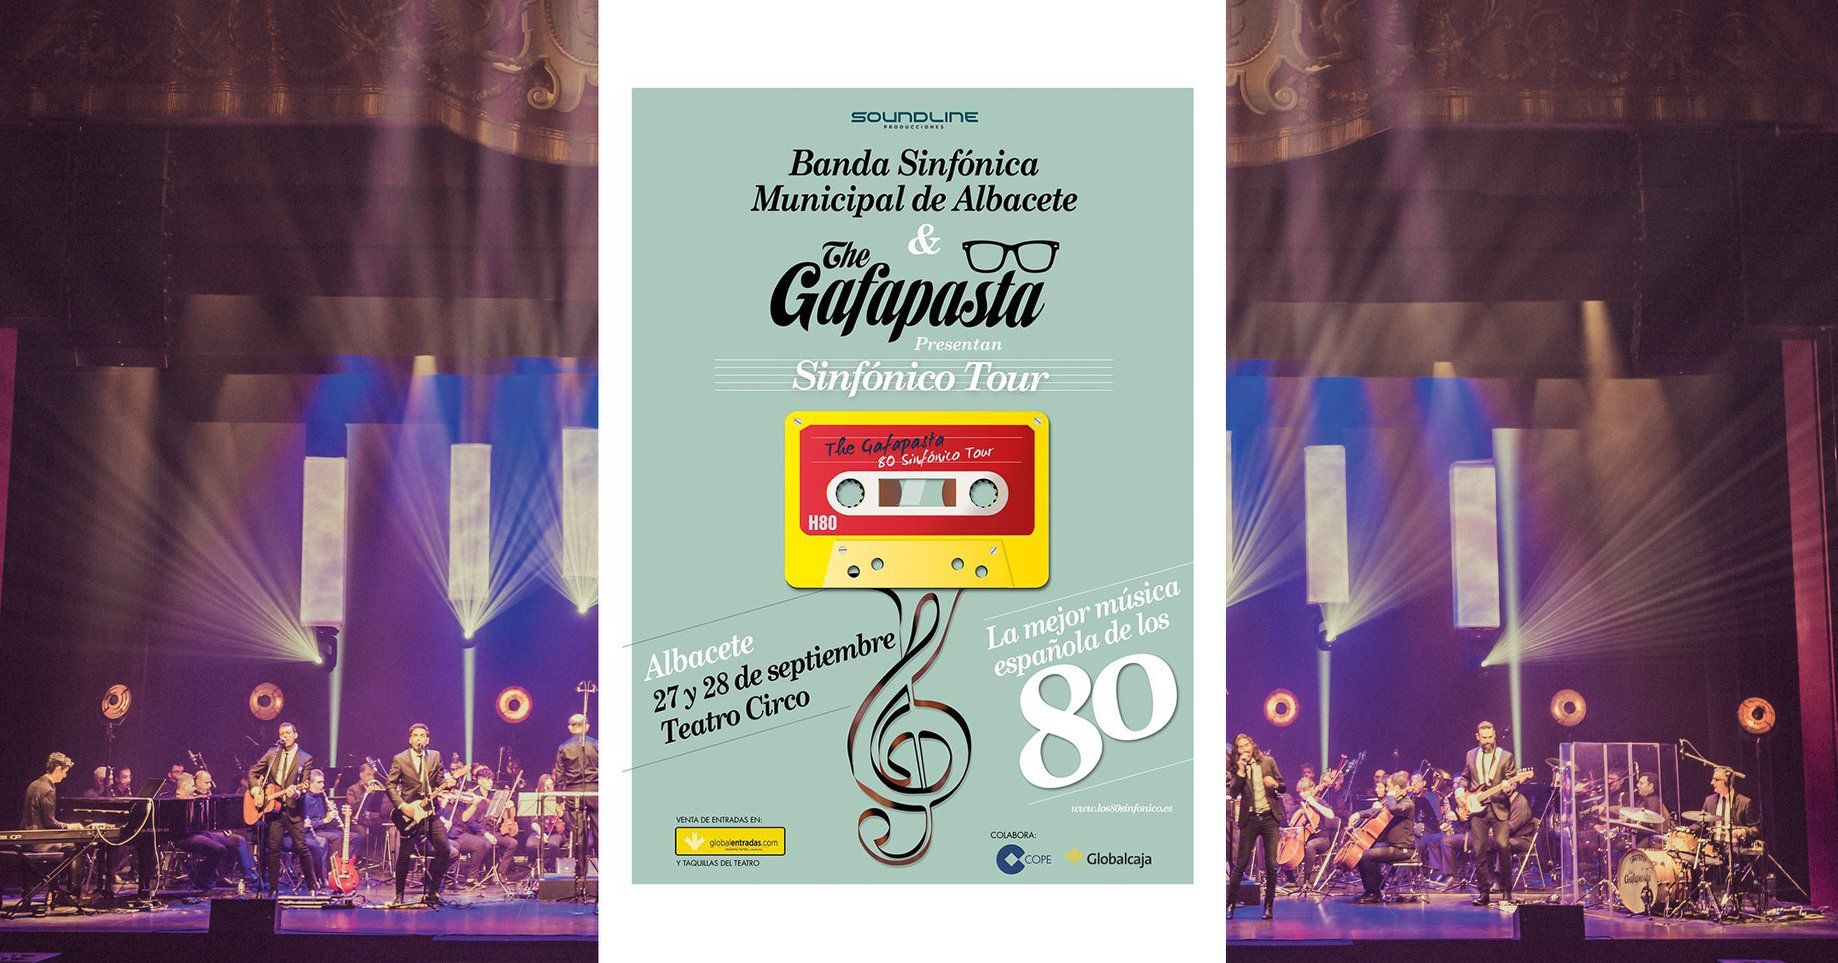 The Gafapasta | Albaceteguia